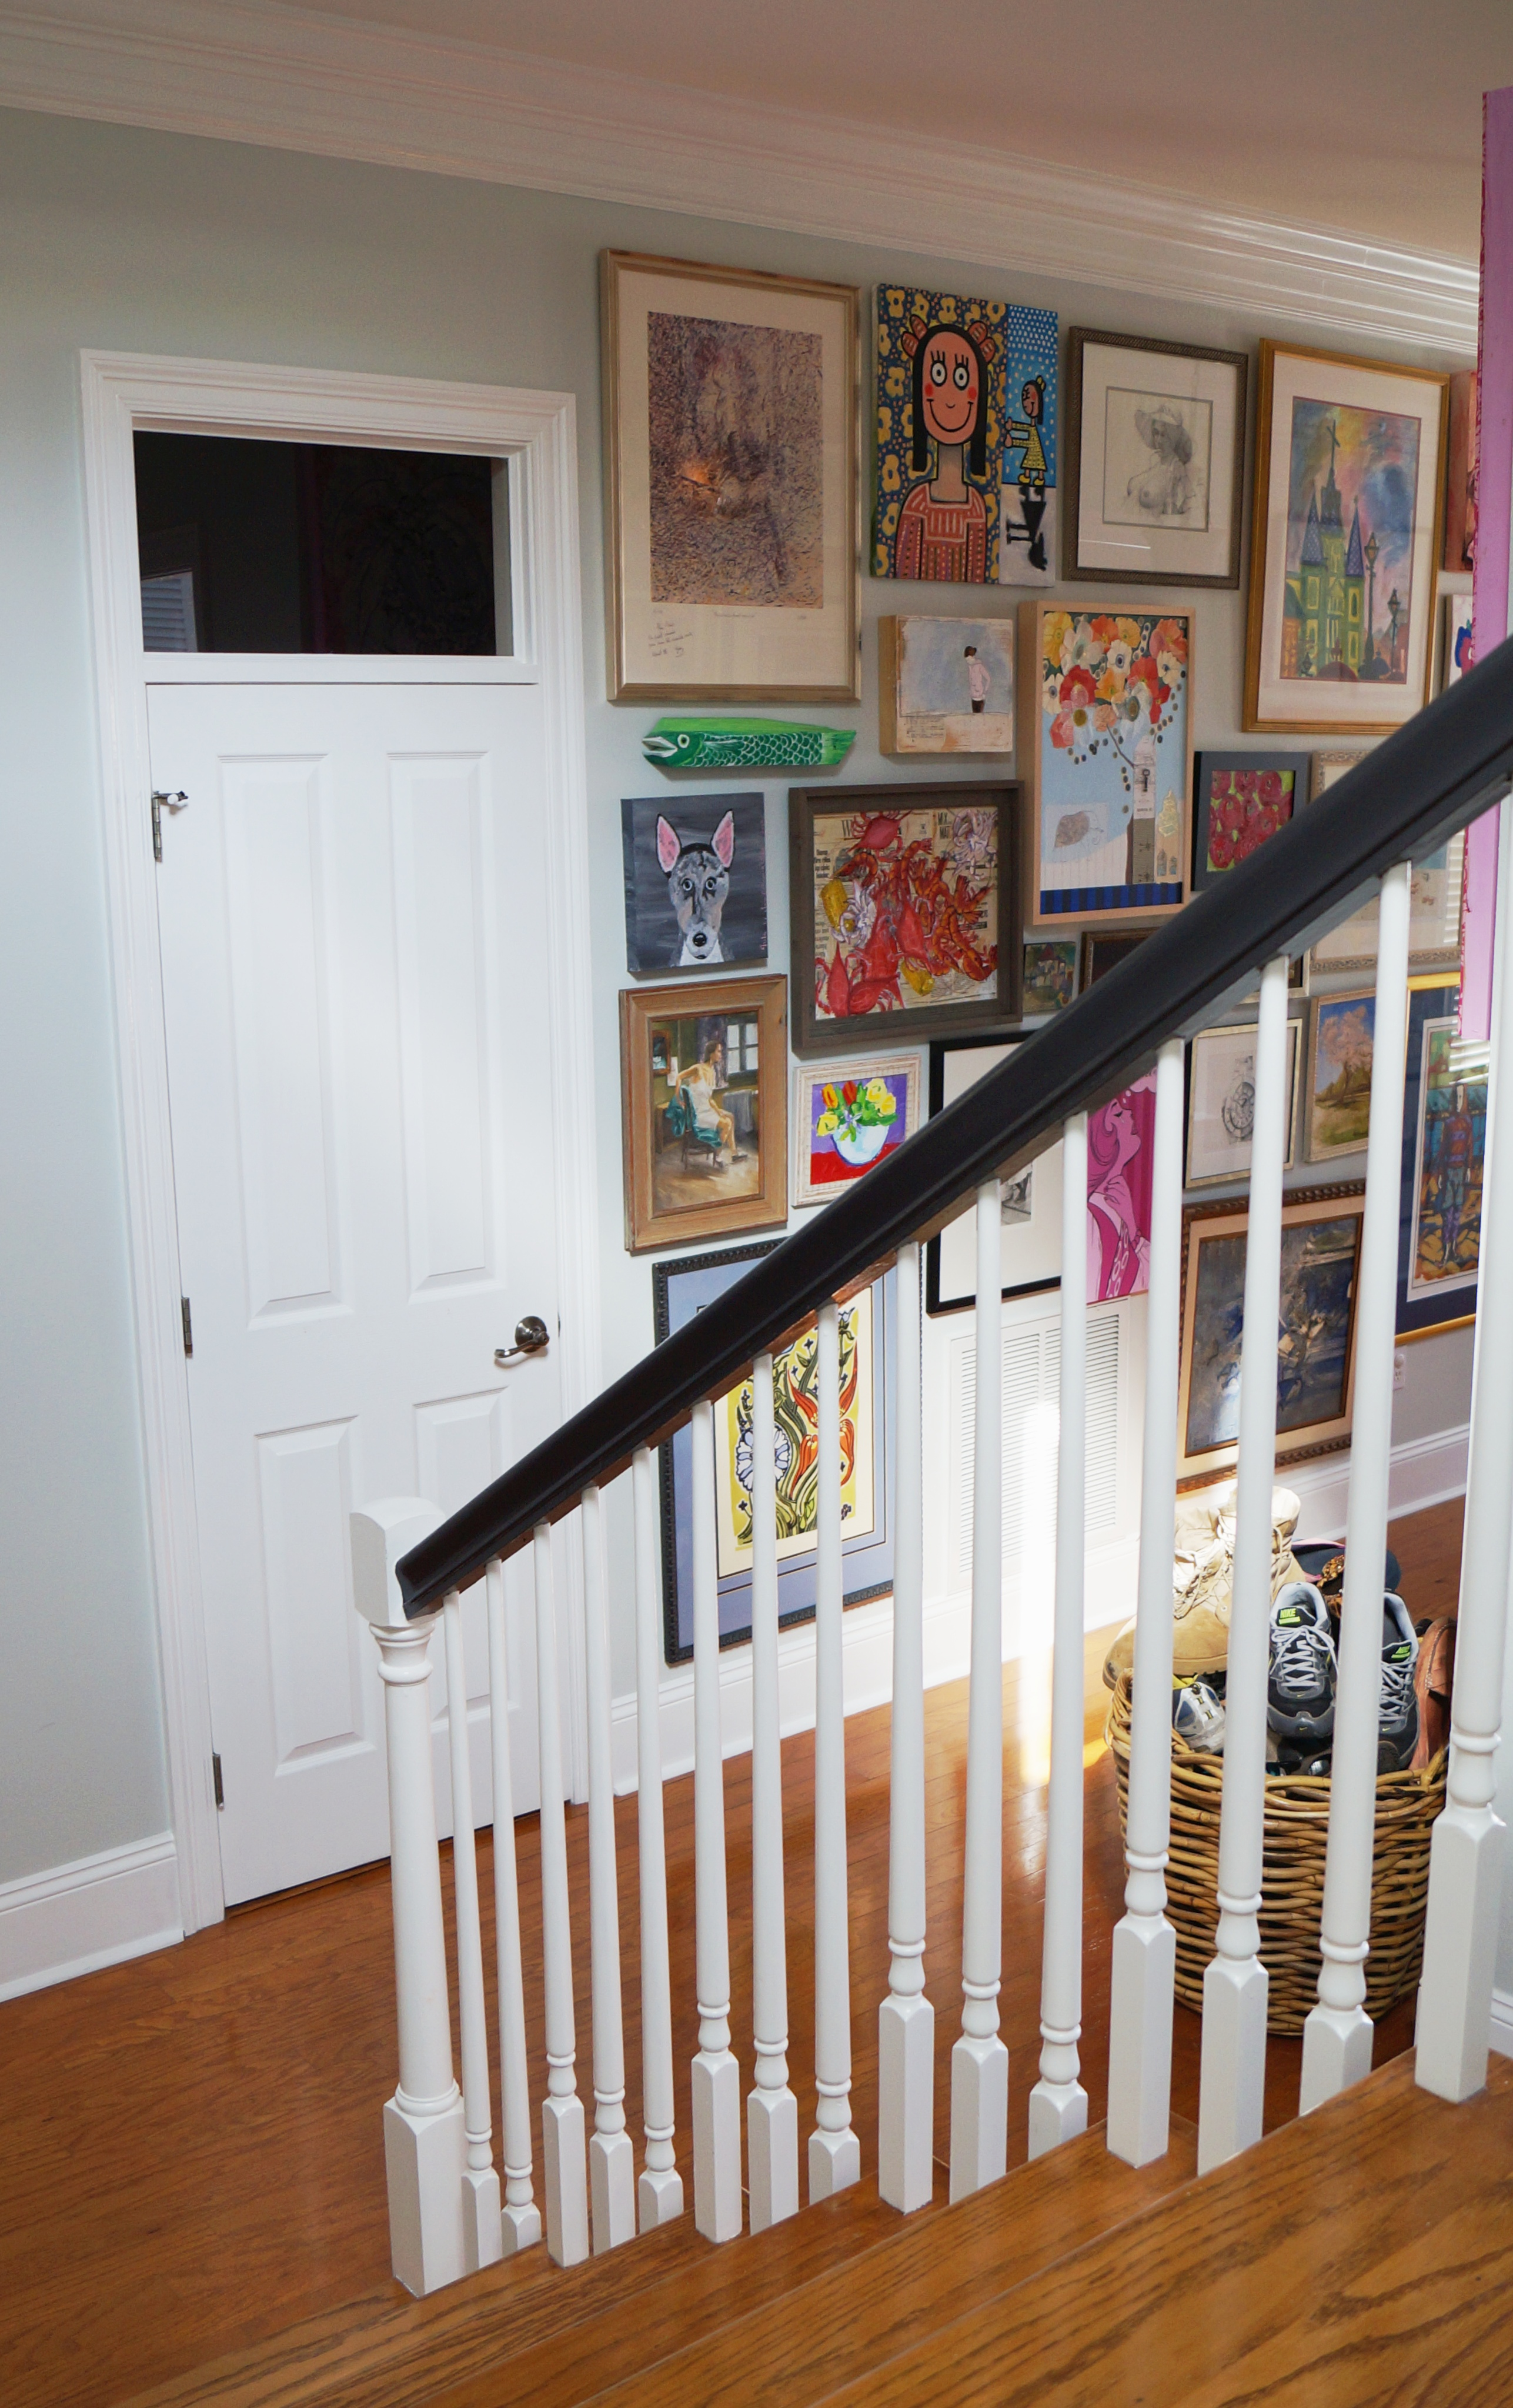 Upgrading Builder Stairs